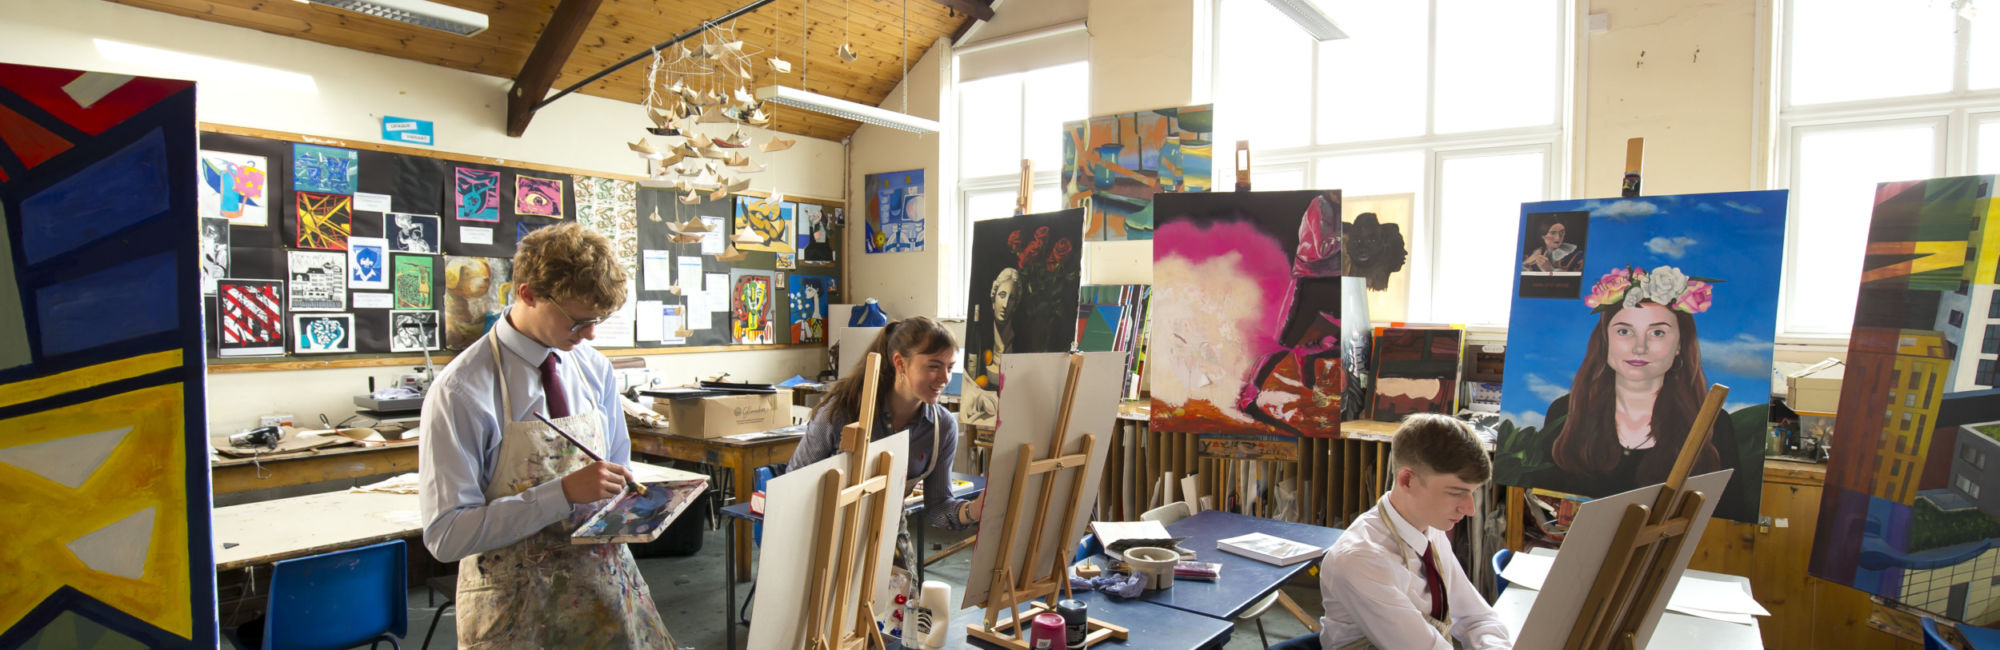 wycliffe pupils painting in art class